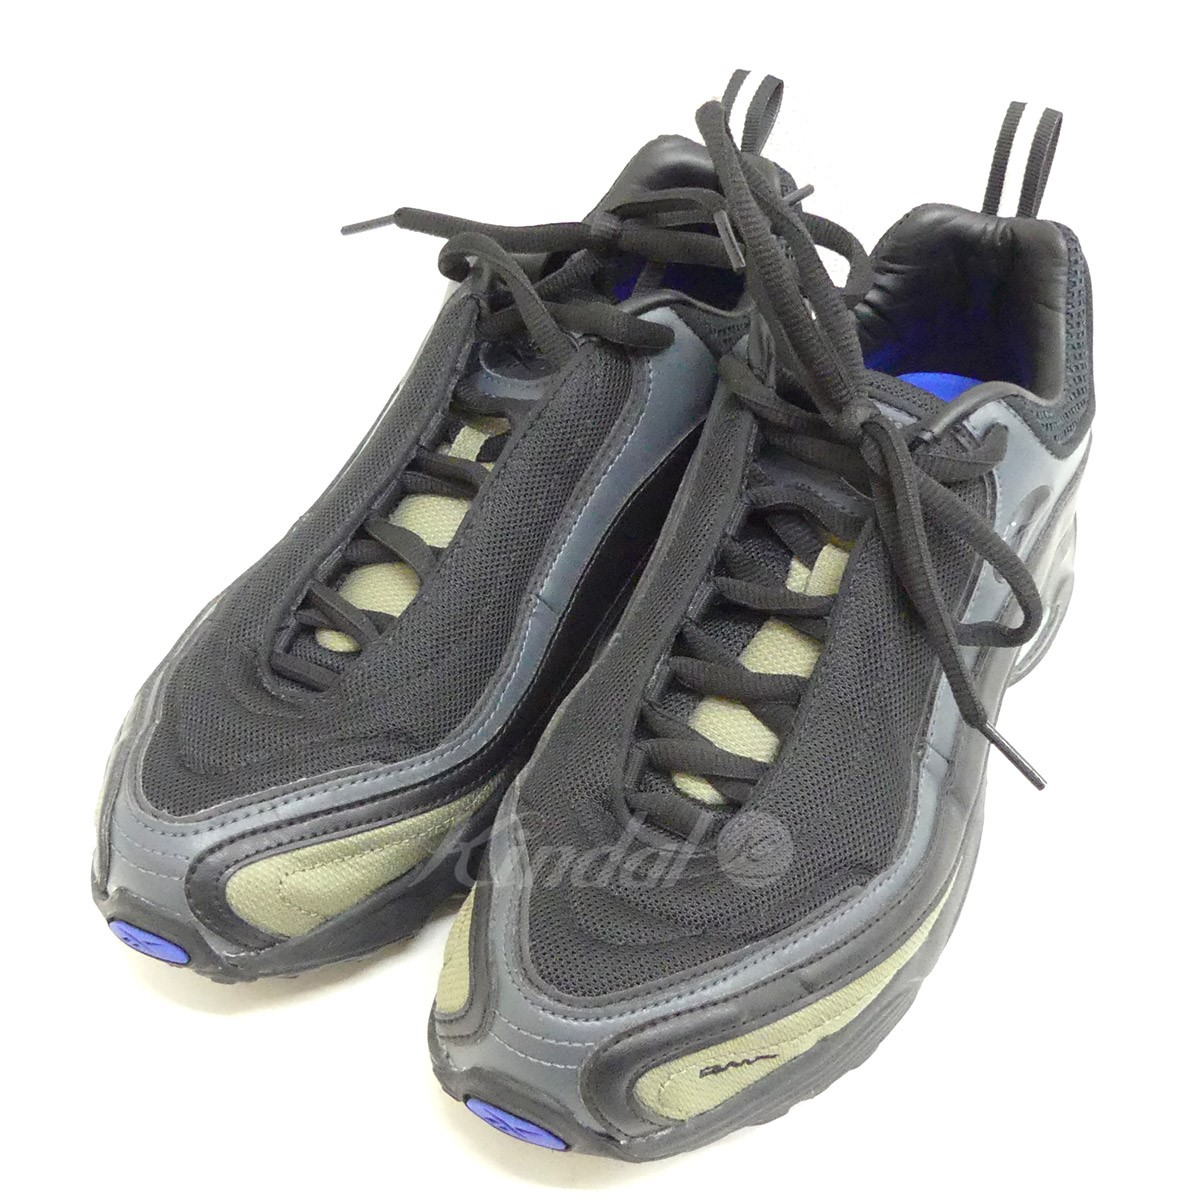 huge sale lowest discount cheap for discount REEBOK X VAINL ARCHIVE DAYTONA DMX VA sneakers 2018AW black size: 28cm  (Reebok X ヴァイナルアーカイブ)